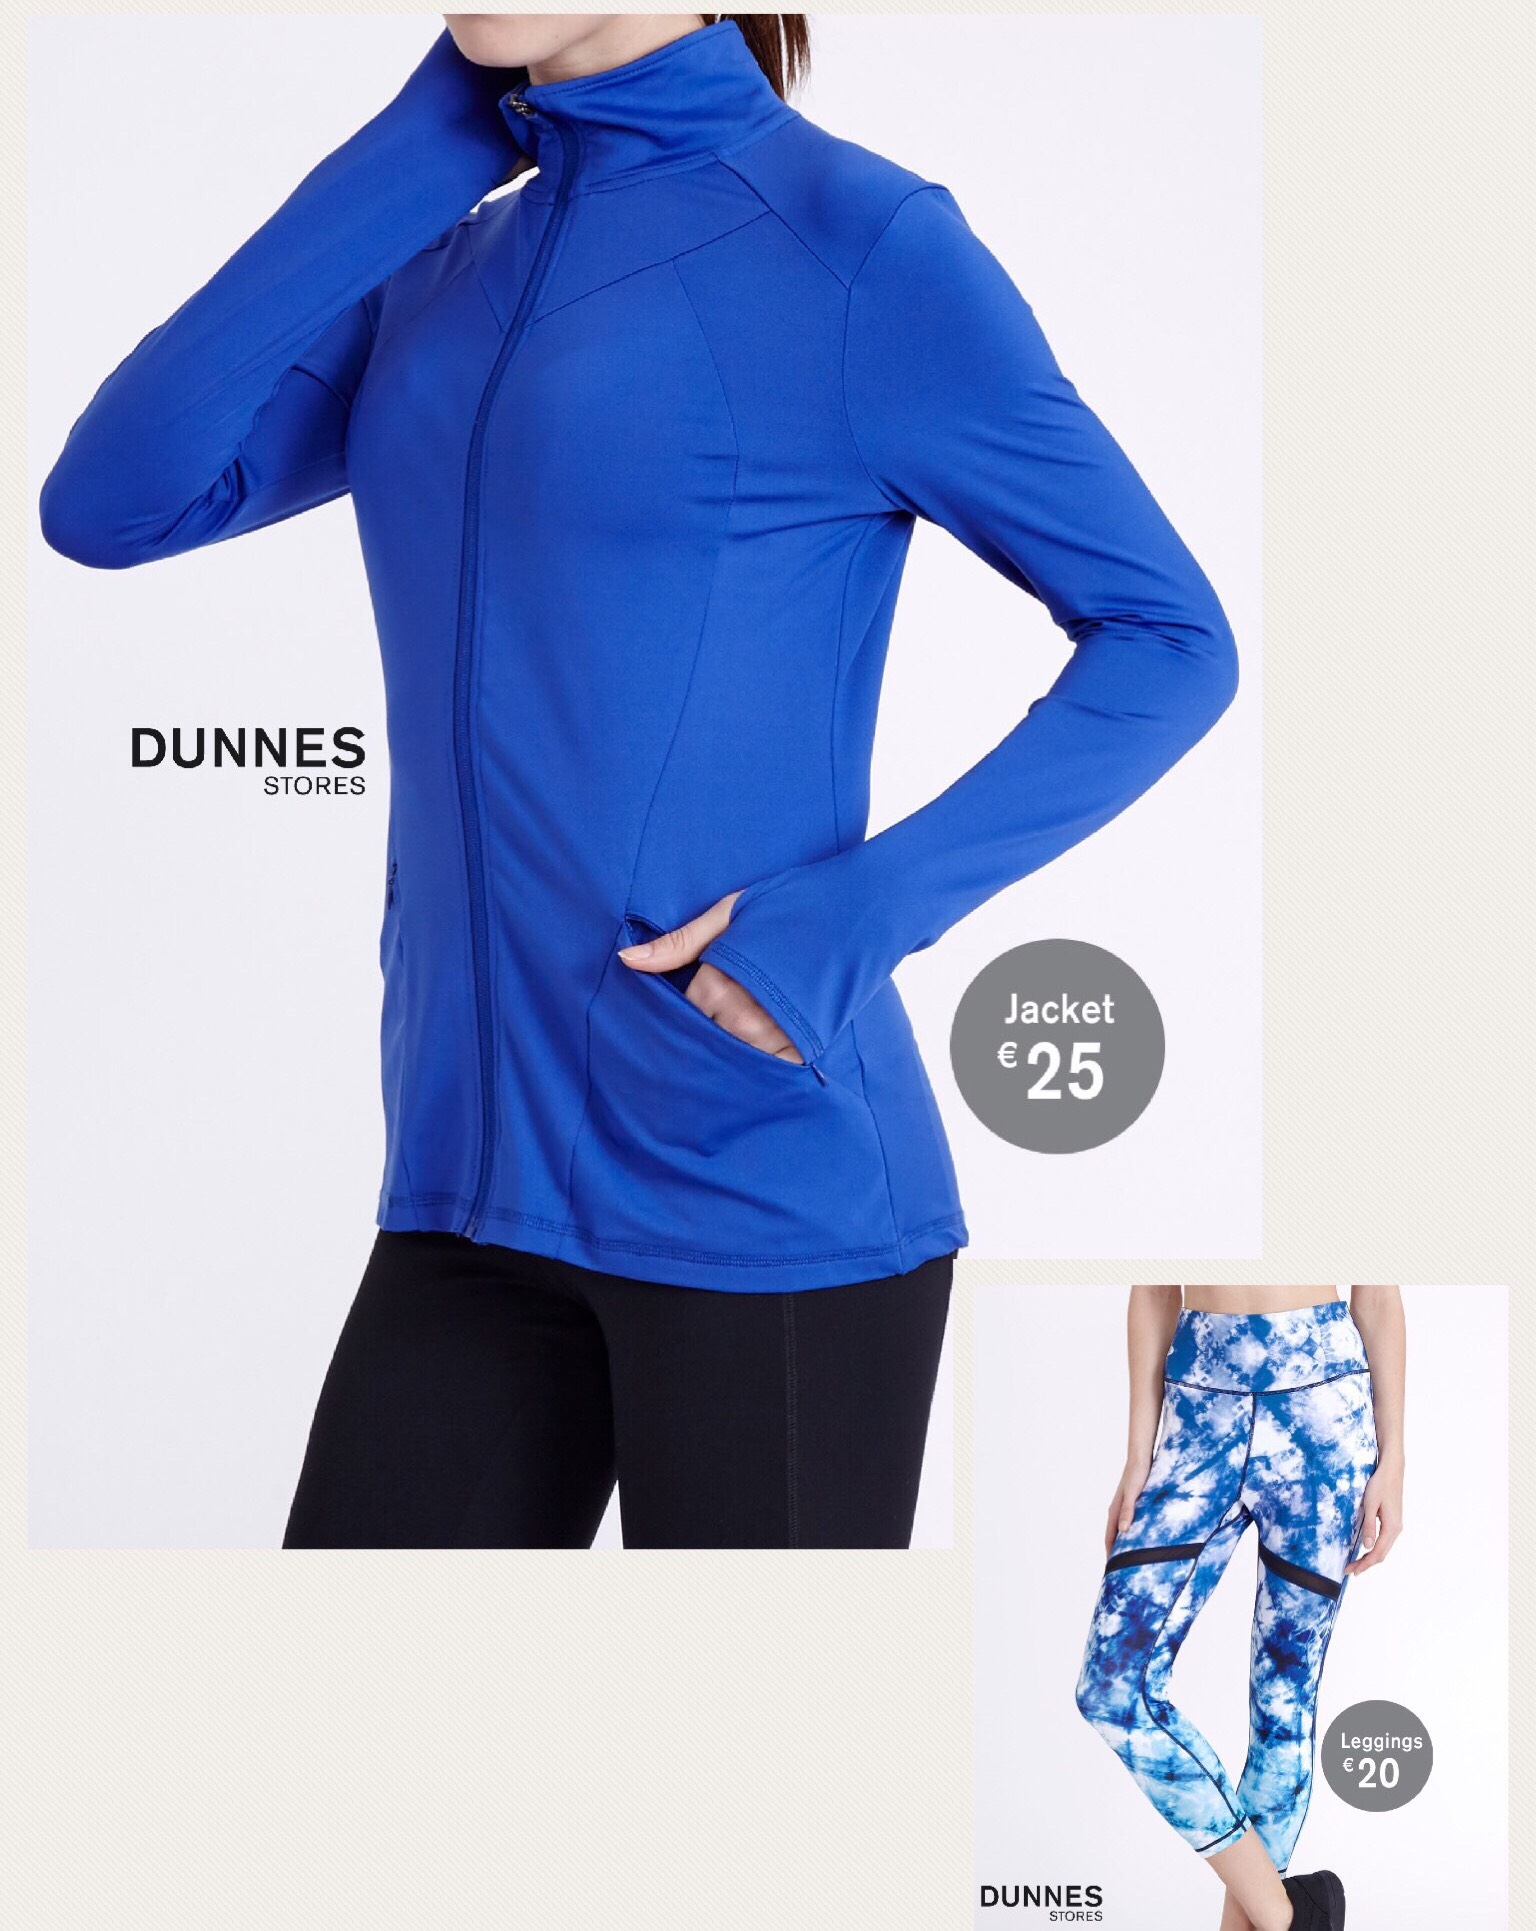 Get marathon-ready with the latest arrivals from Dunnes Stores